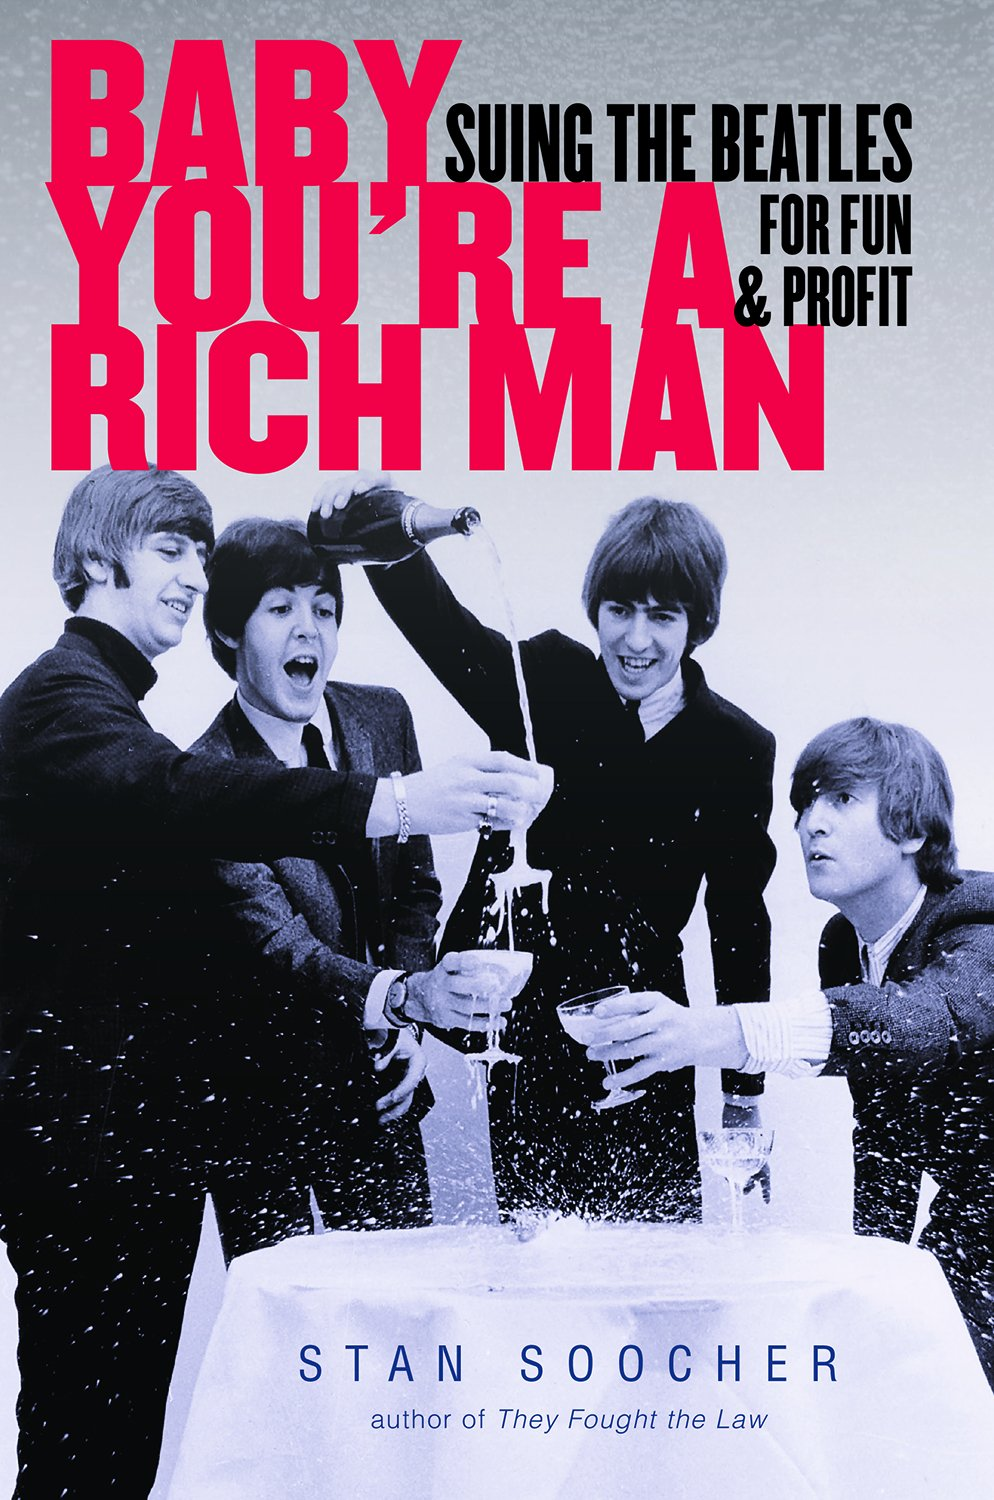 Baby you're a rich man book cover